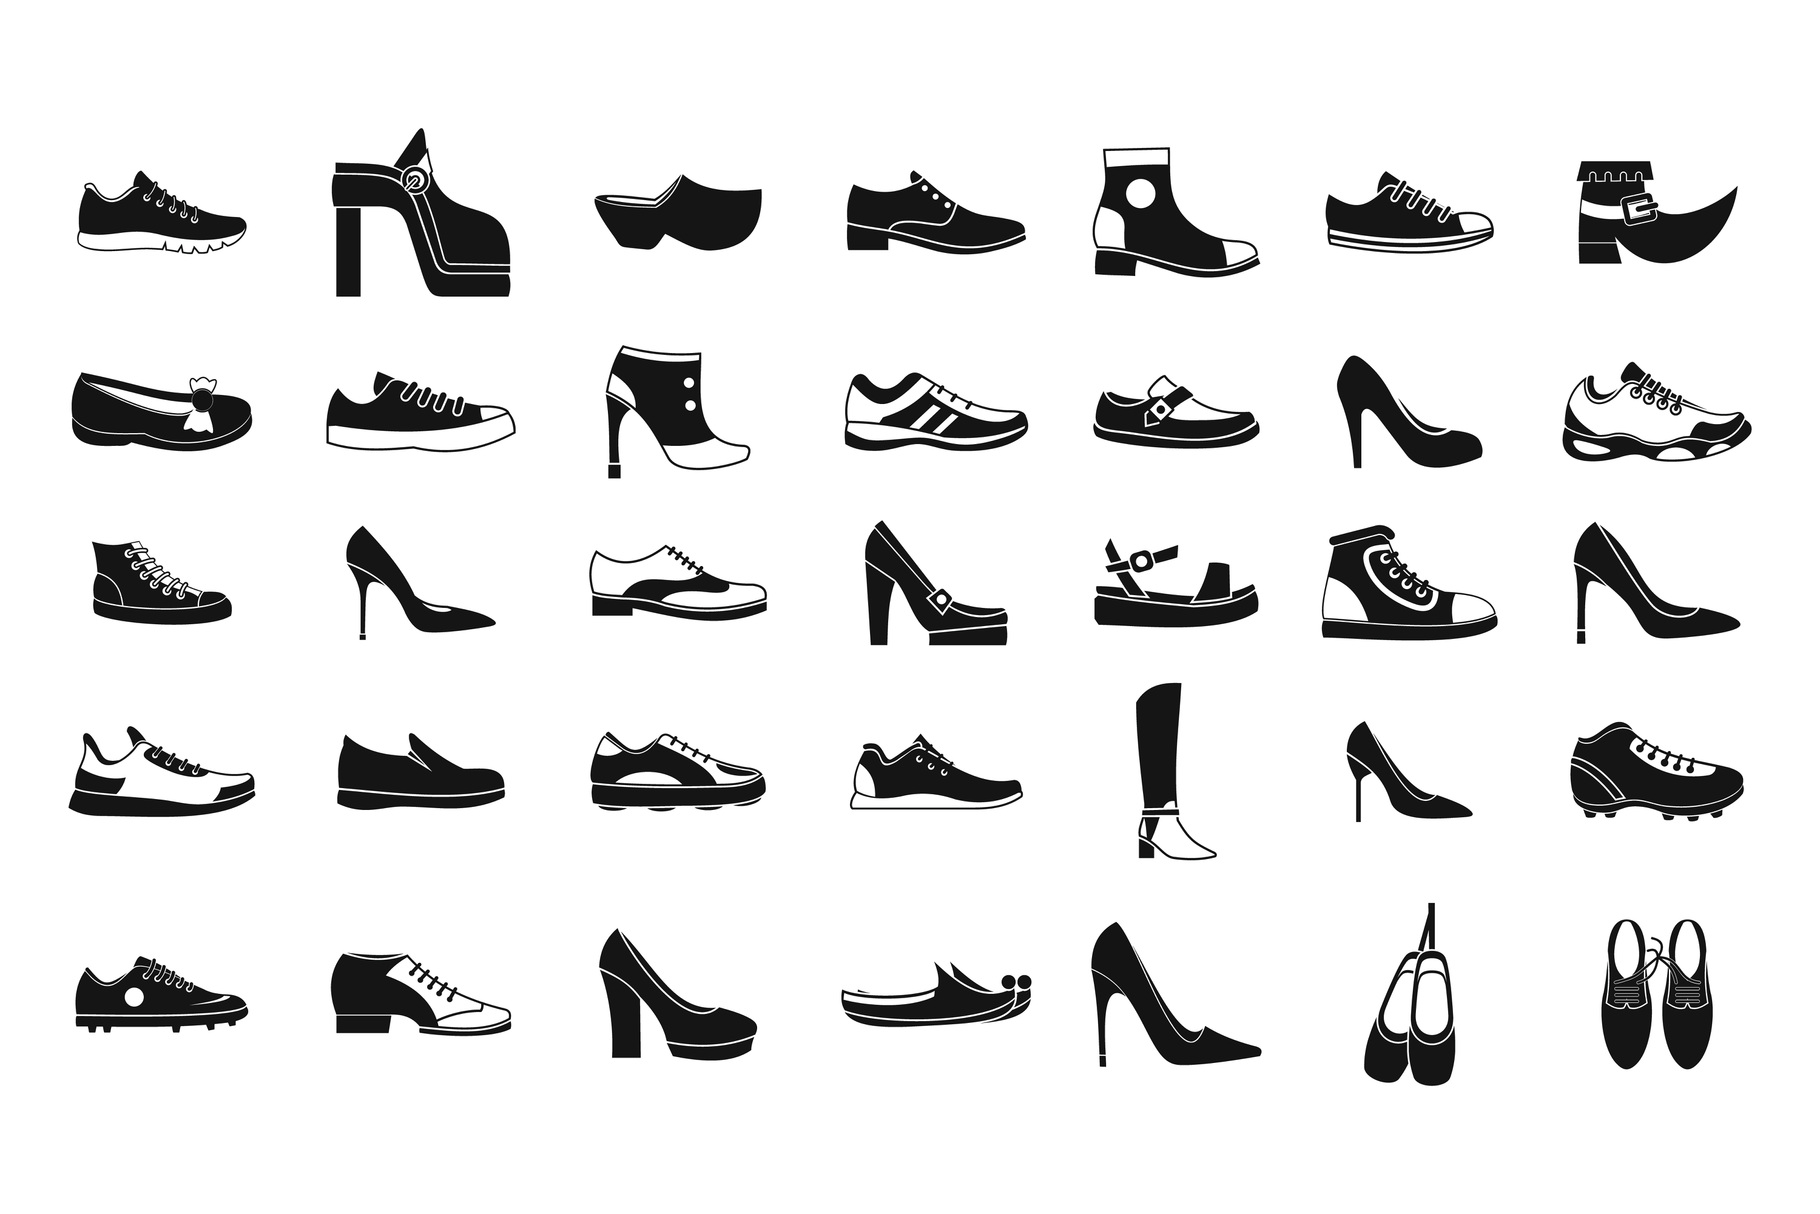 Shoes icon set, simple style example image 1